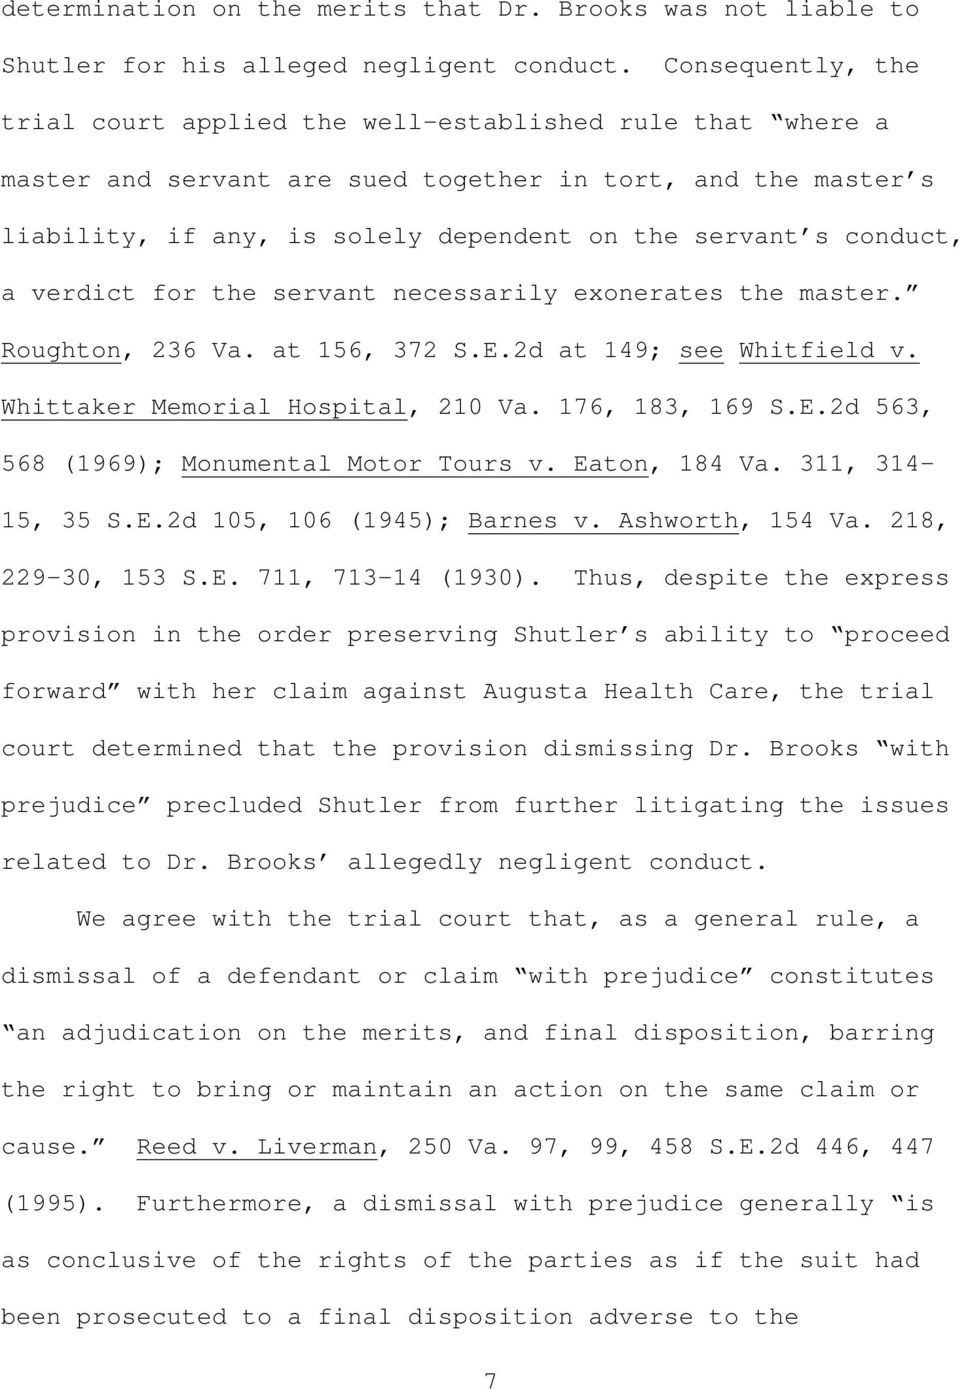 conduct, a verdict for the servant necessarily exonerates the master. Roughton, 236 Va. at 156, 372 S.E.2d at 149; see Whitfield v. Whittaker Memorial Hospital, 210 Va. 176, 183, 169 S.E.2d 563, 568 (1969); Monumental Motor Tours v.